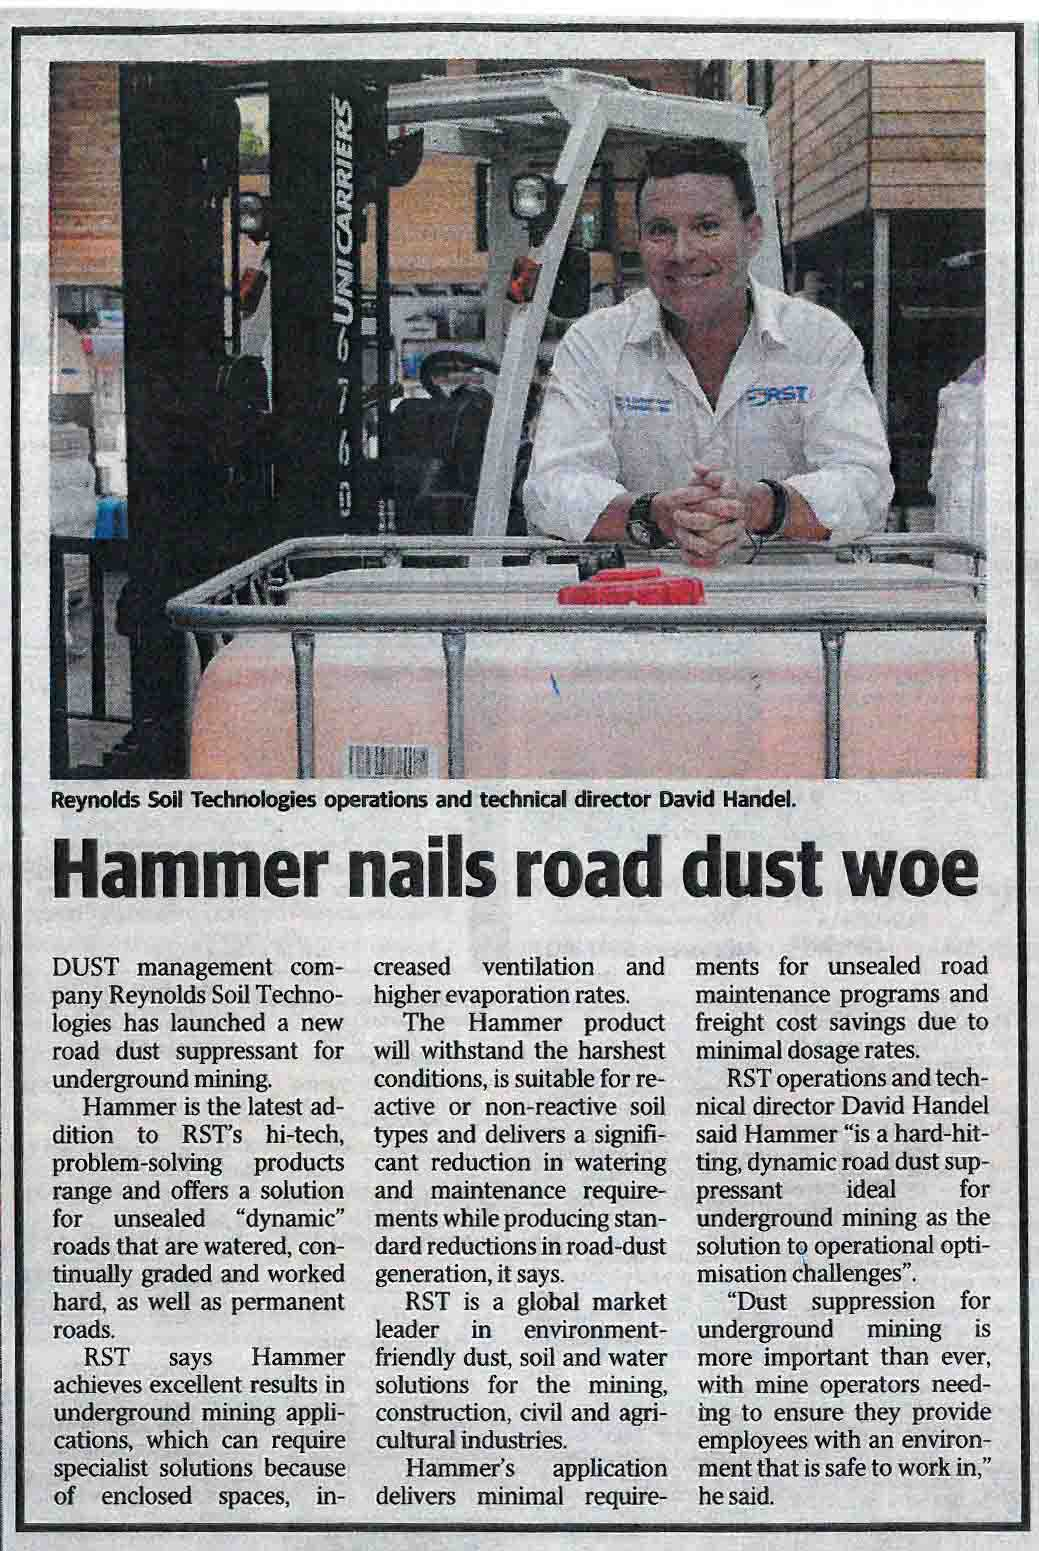 Hammer nails road dust woe